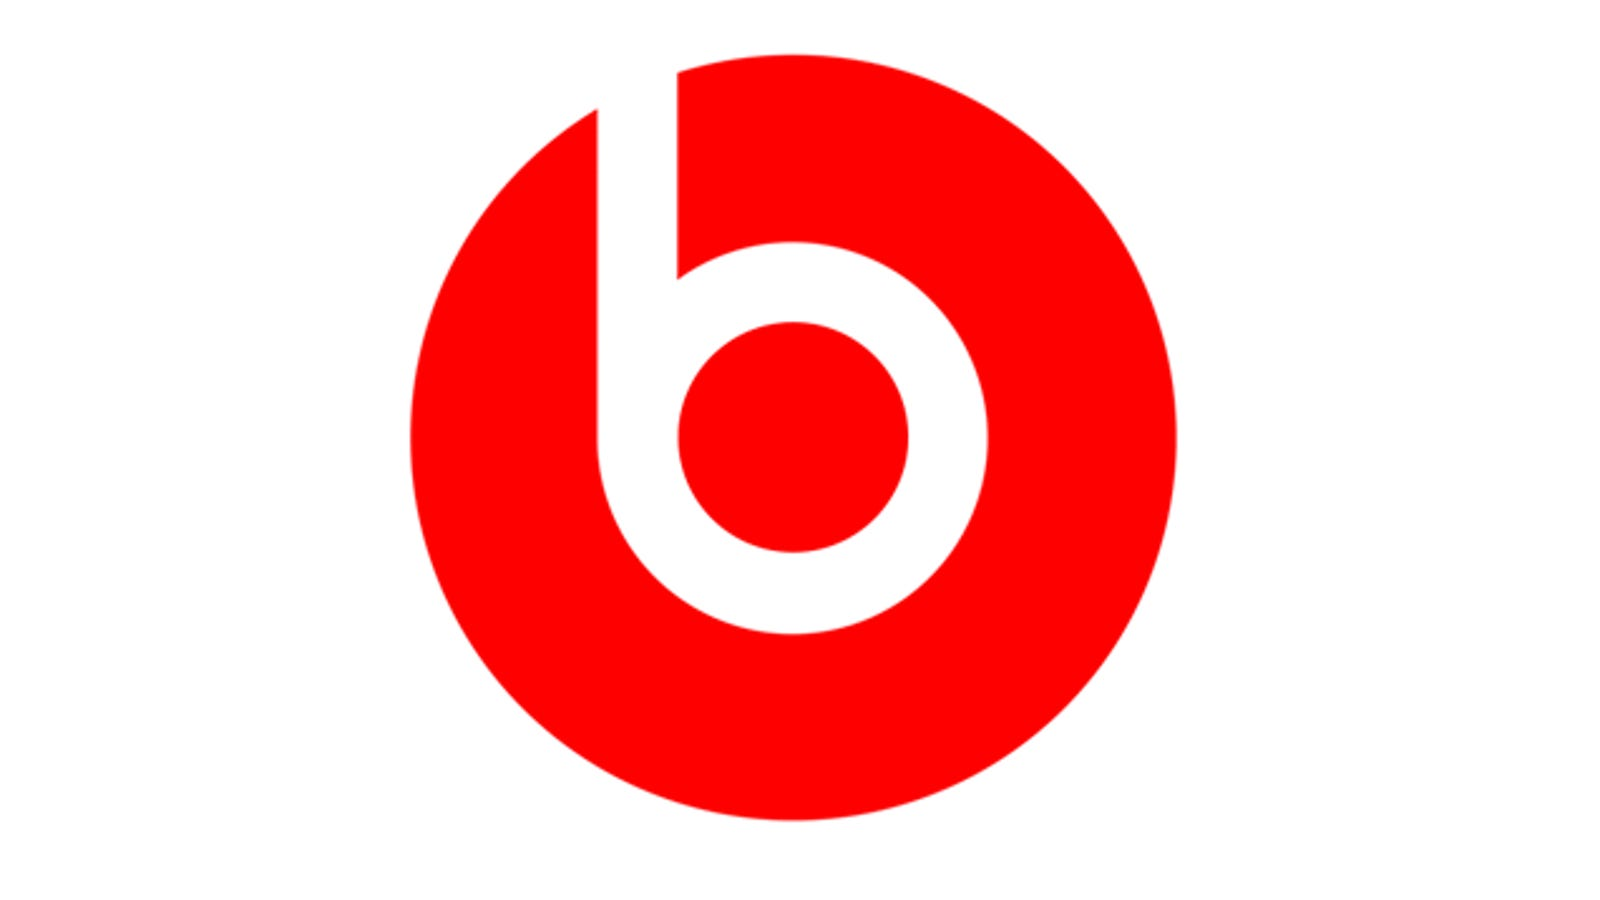 beats wireless headphones shadow gray - Are Beats Headphones Really Designed To Trick You?